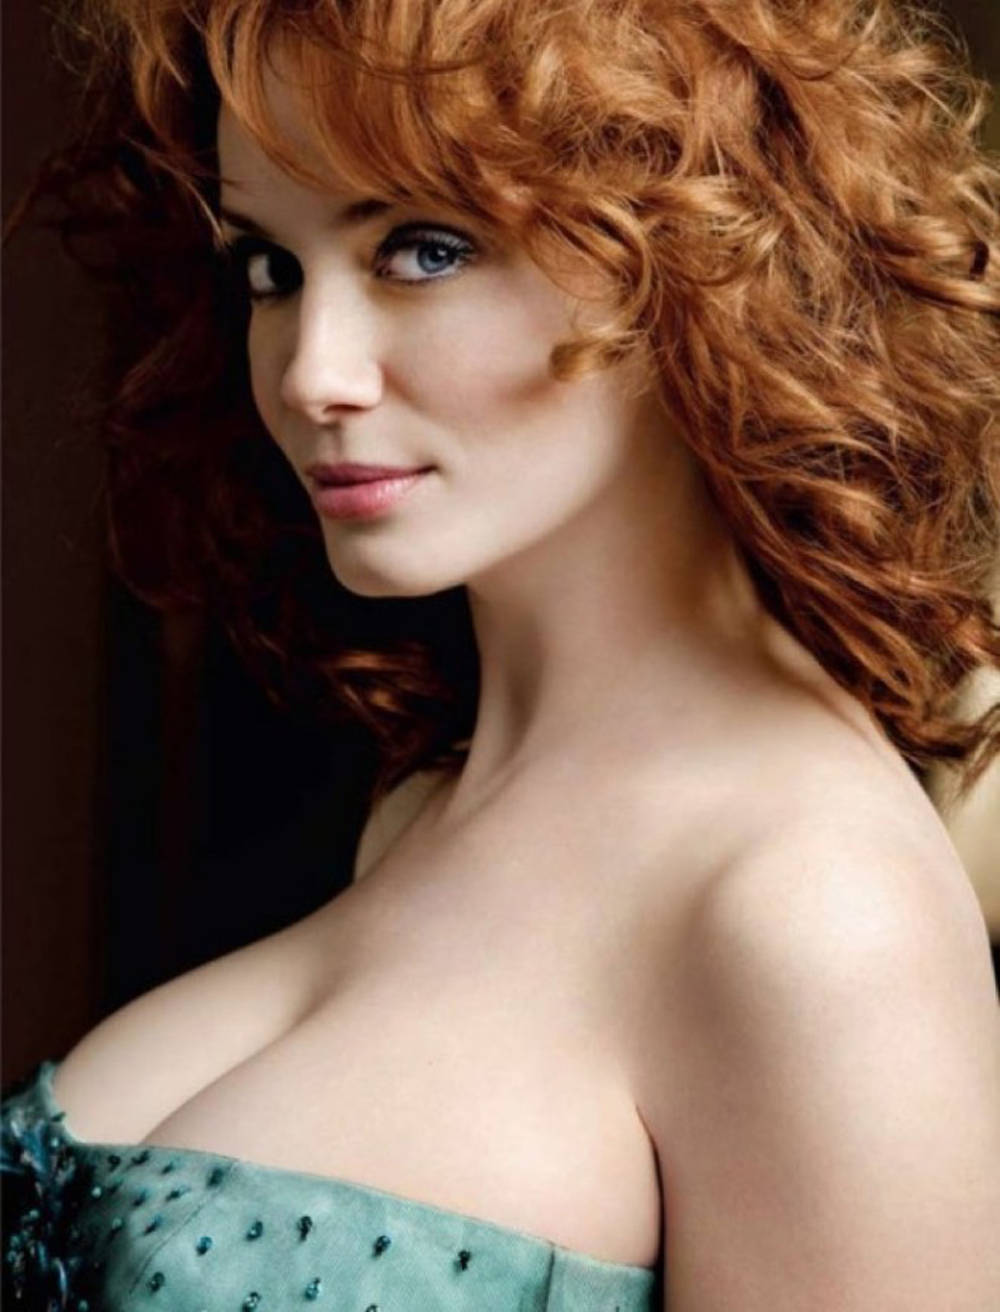 600full-christina-hendricks-61-660x866